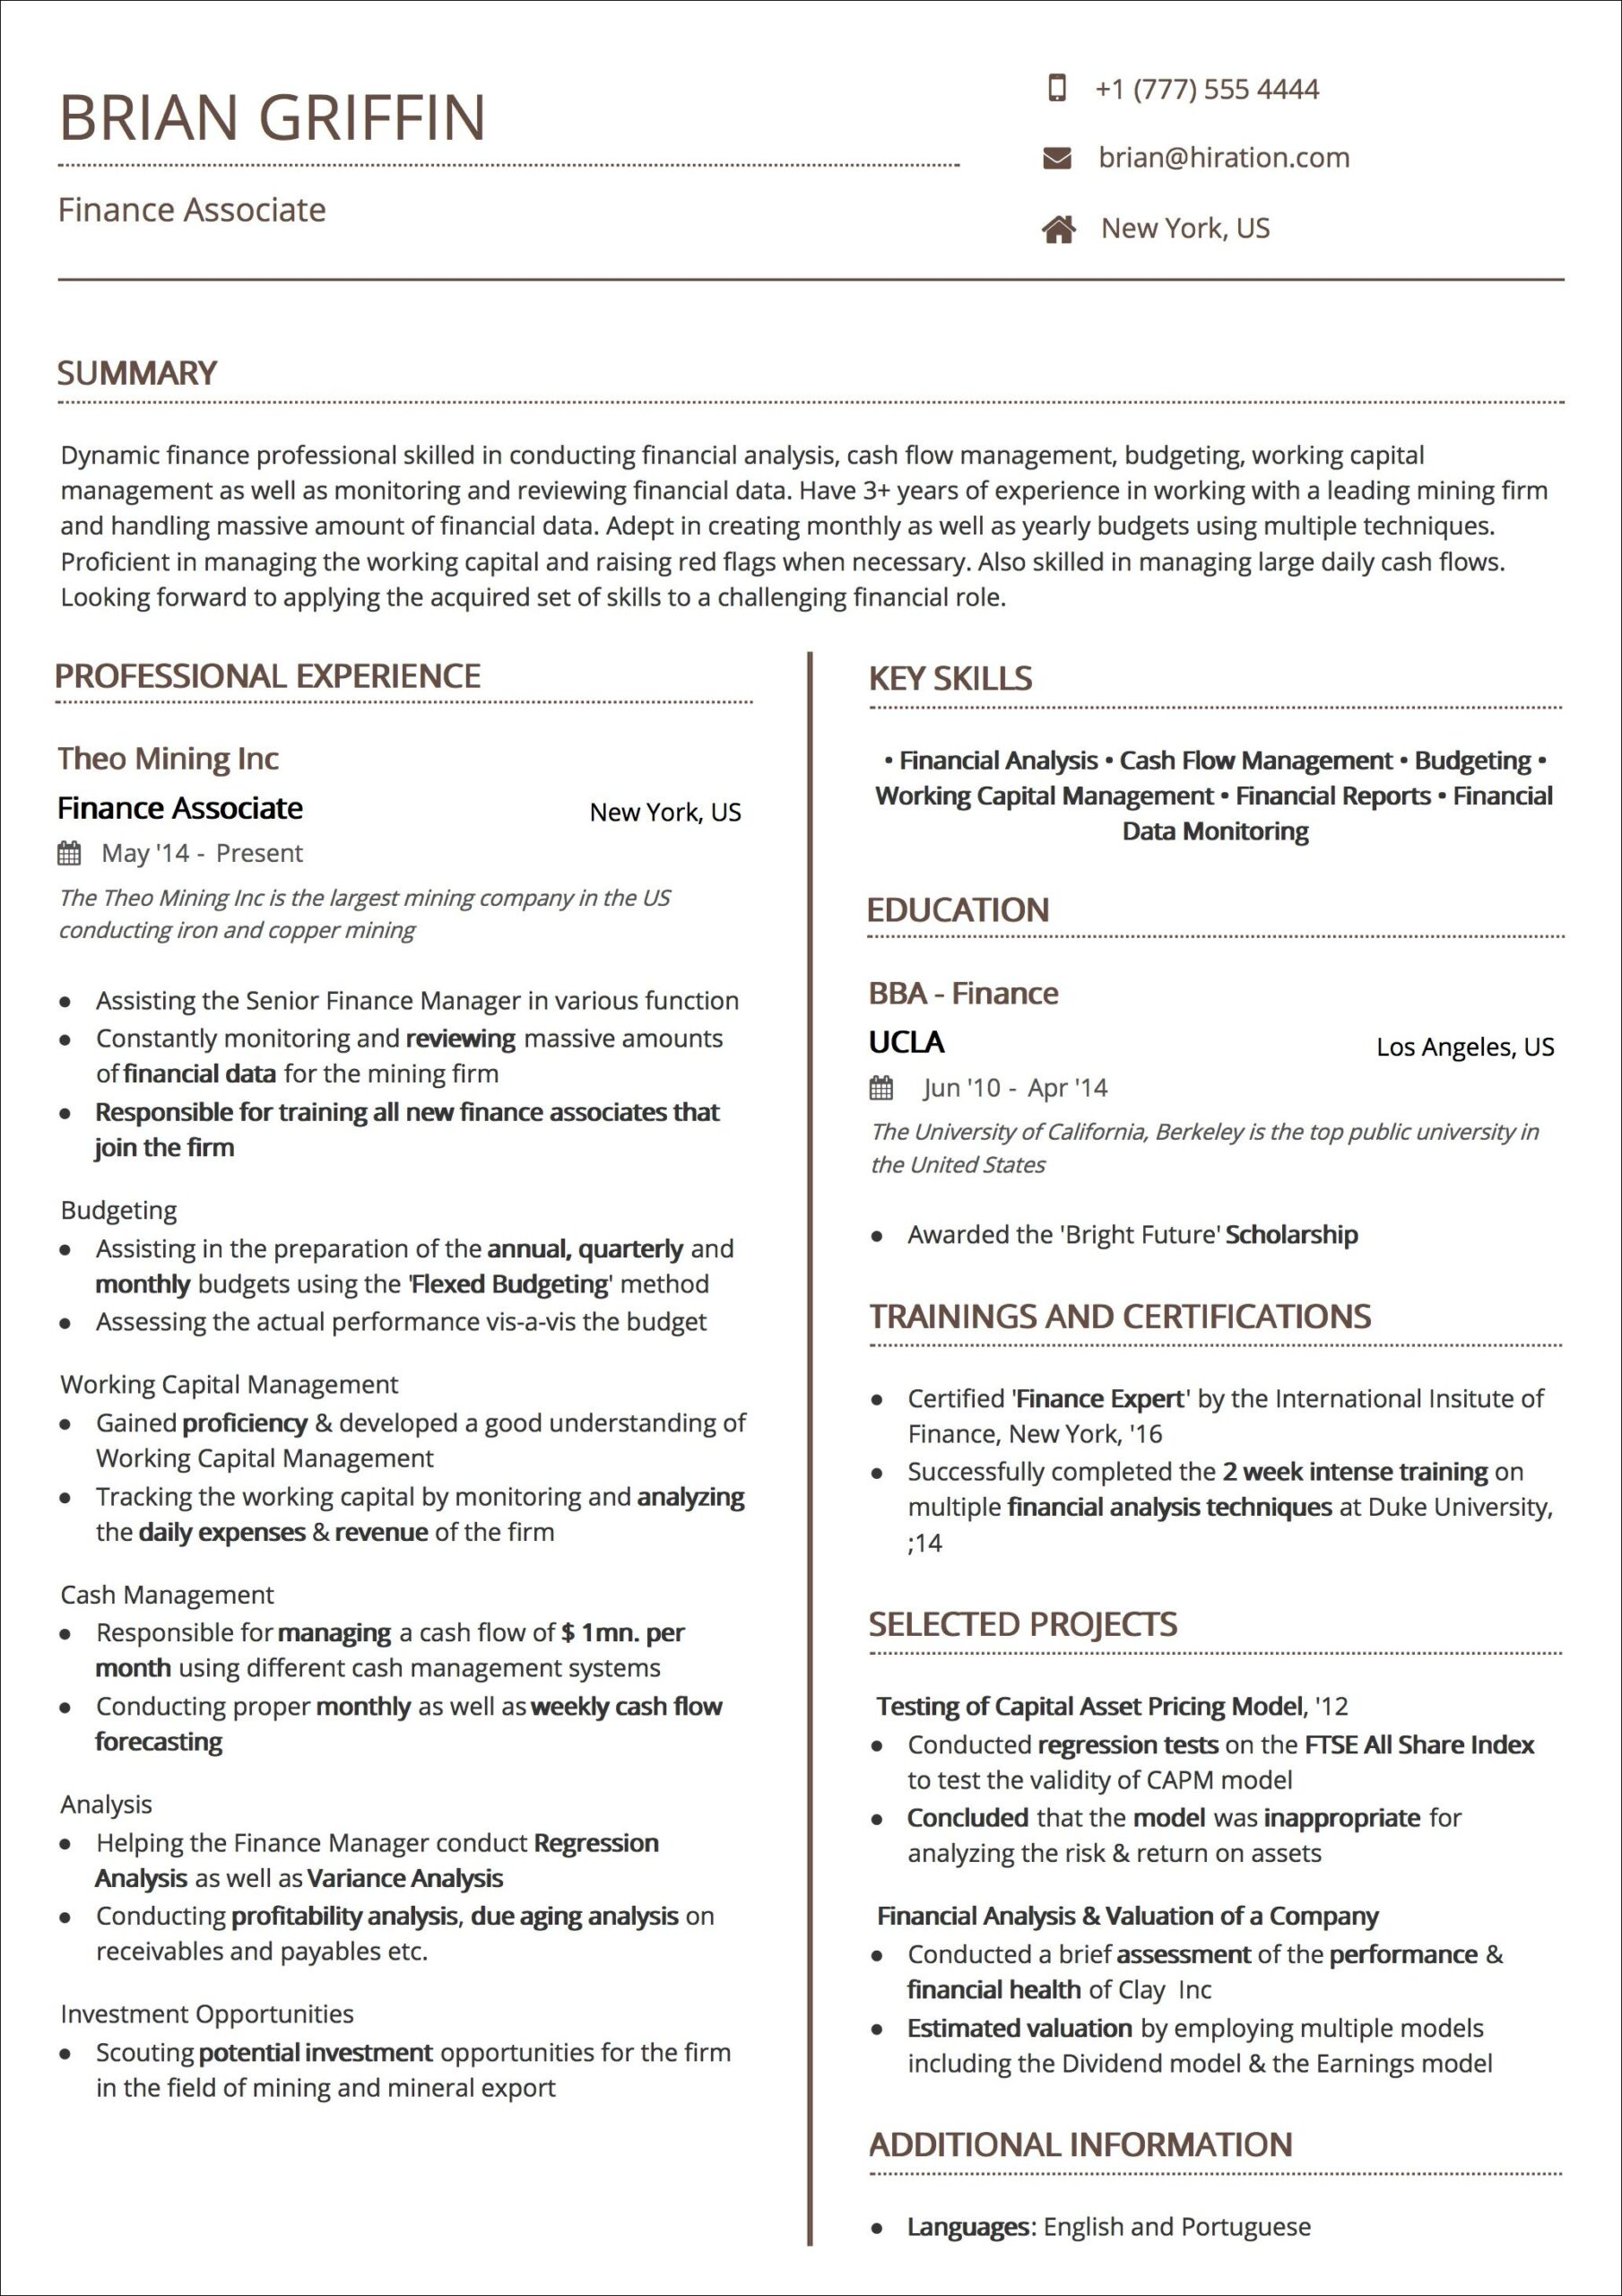 resume templates the guide to choosing best template free ats uniform modeling for Resume Free Ats Resume Templates